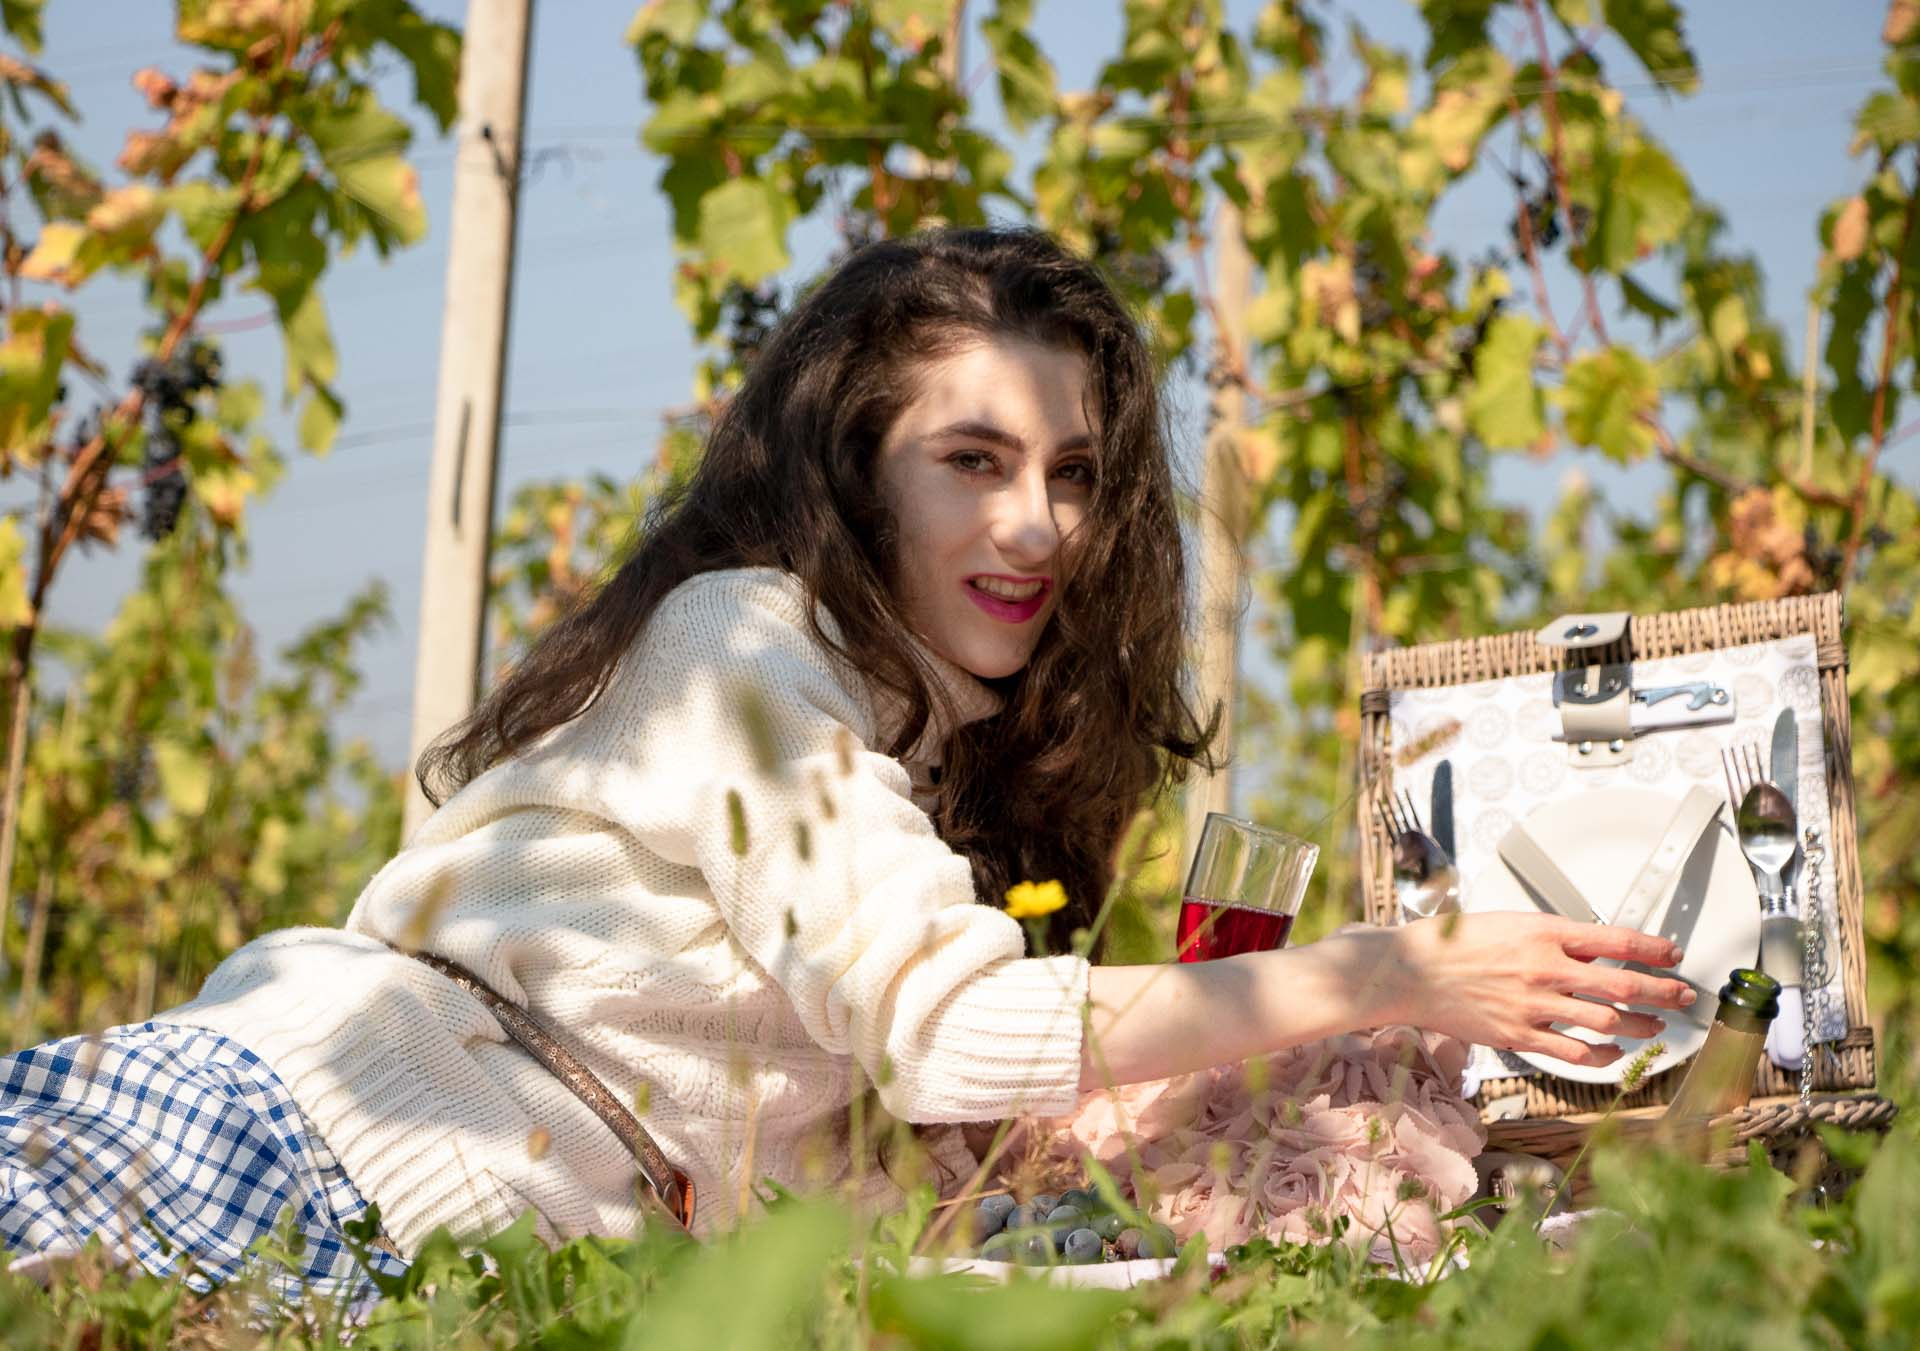 Beautiful Slovenian Fashion Blogger Veronika Lipar of Brunette from Wall Street dressed in blue and white check button down Mango dress, oversized white turtleneck sweater, dangling belt at the countryside picnic in vineyard